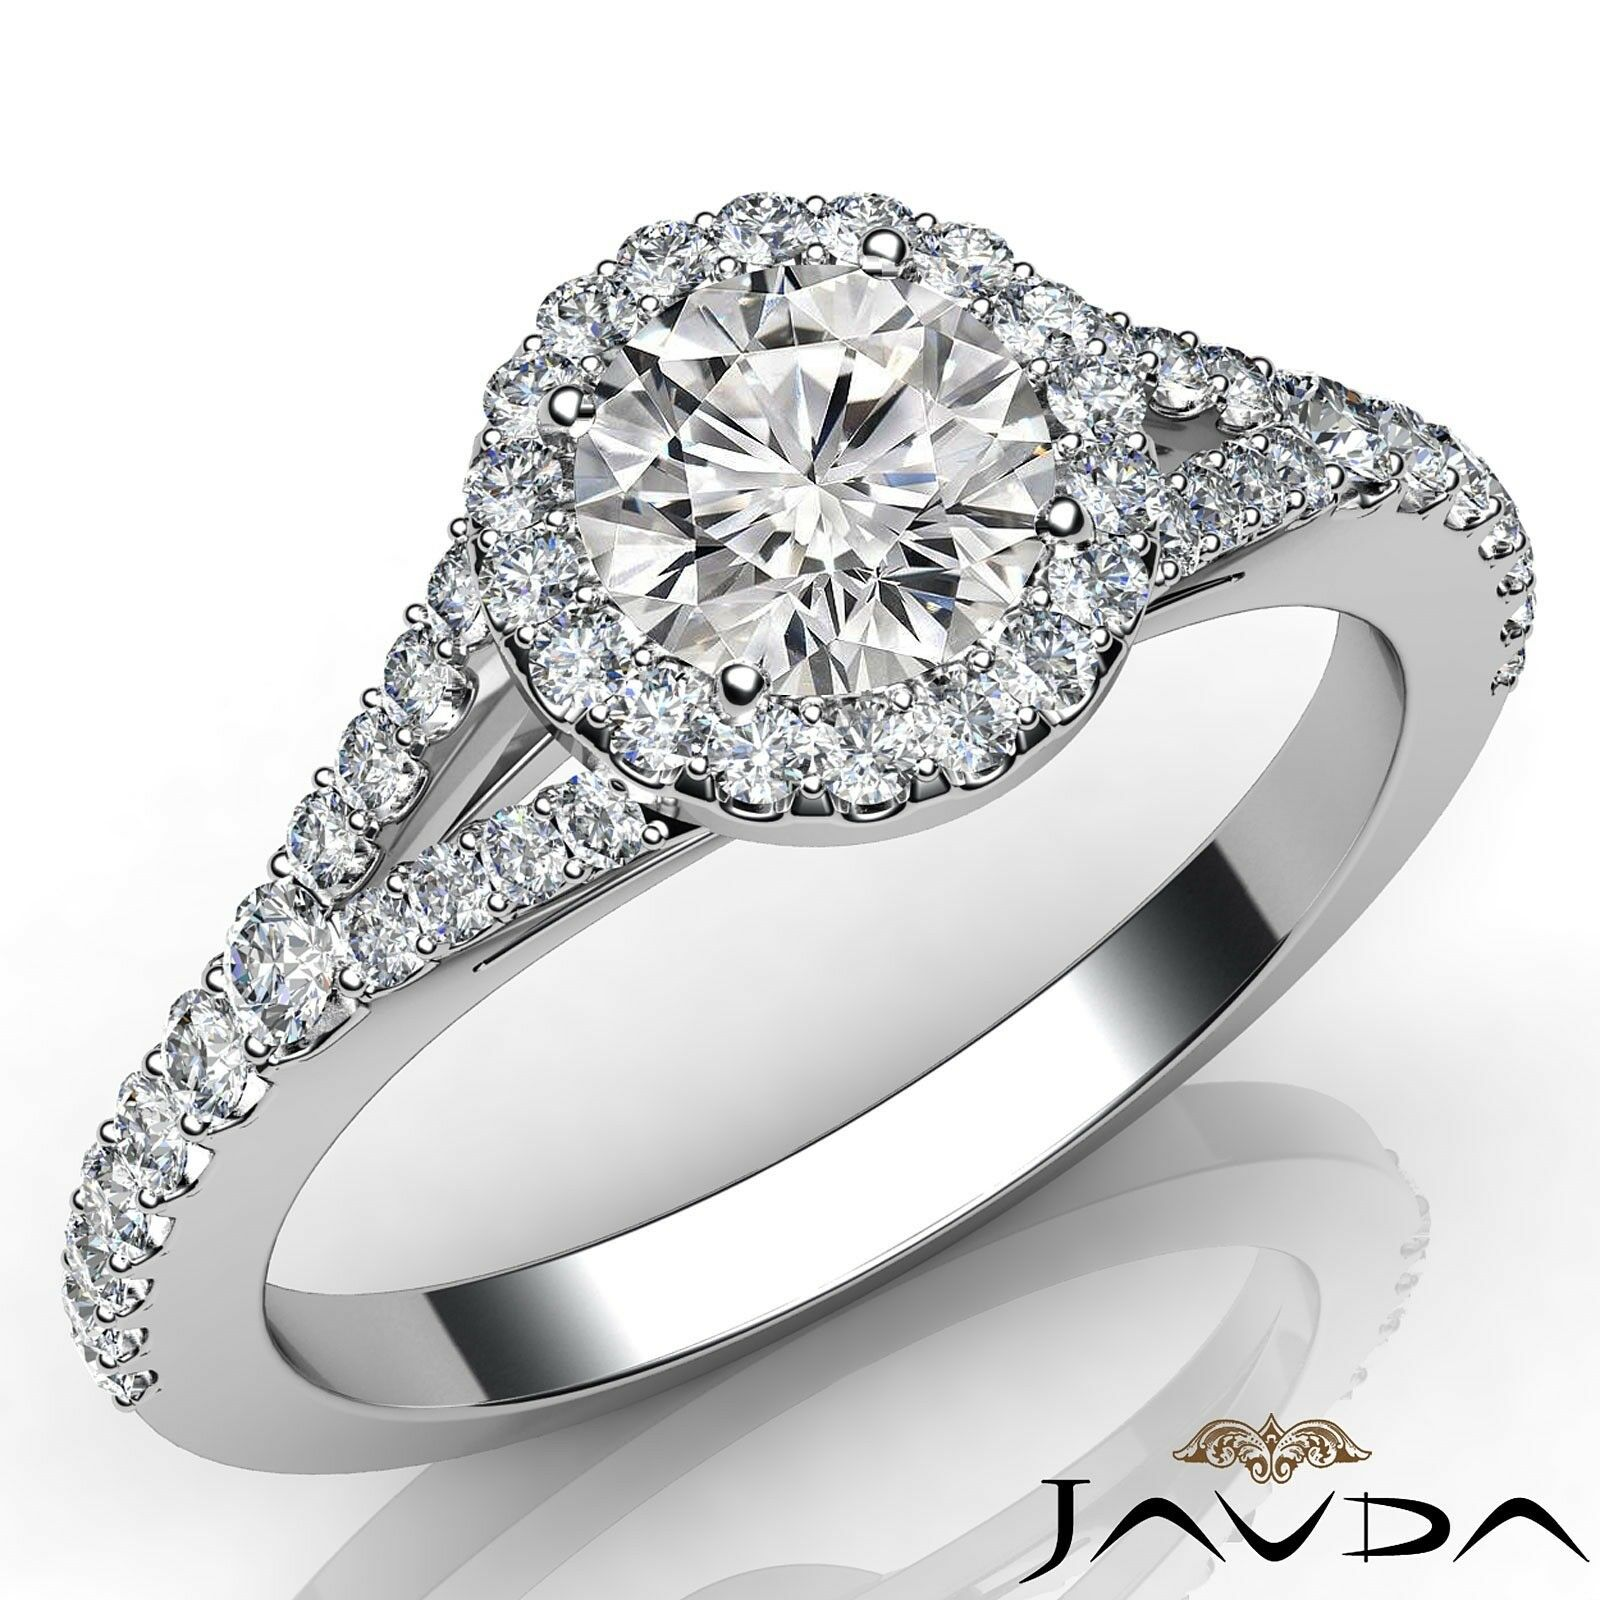 0.9ctw Halo Pave Set Round Diamond Engagement Ring GIA H-VS1 White Gold Women